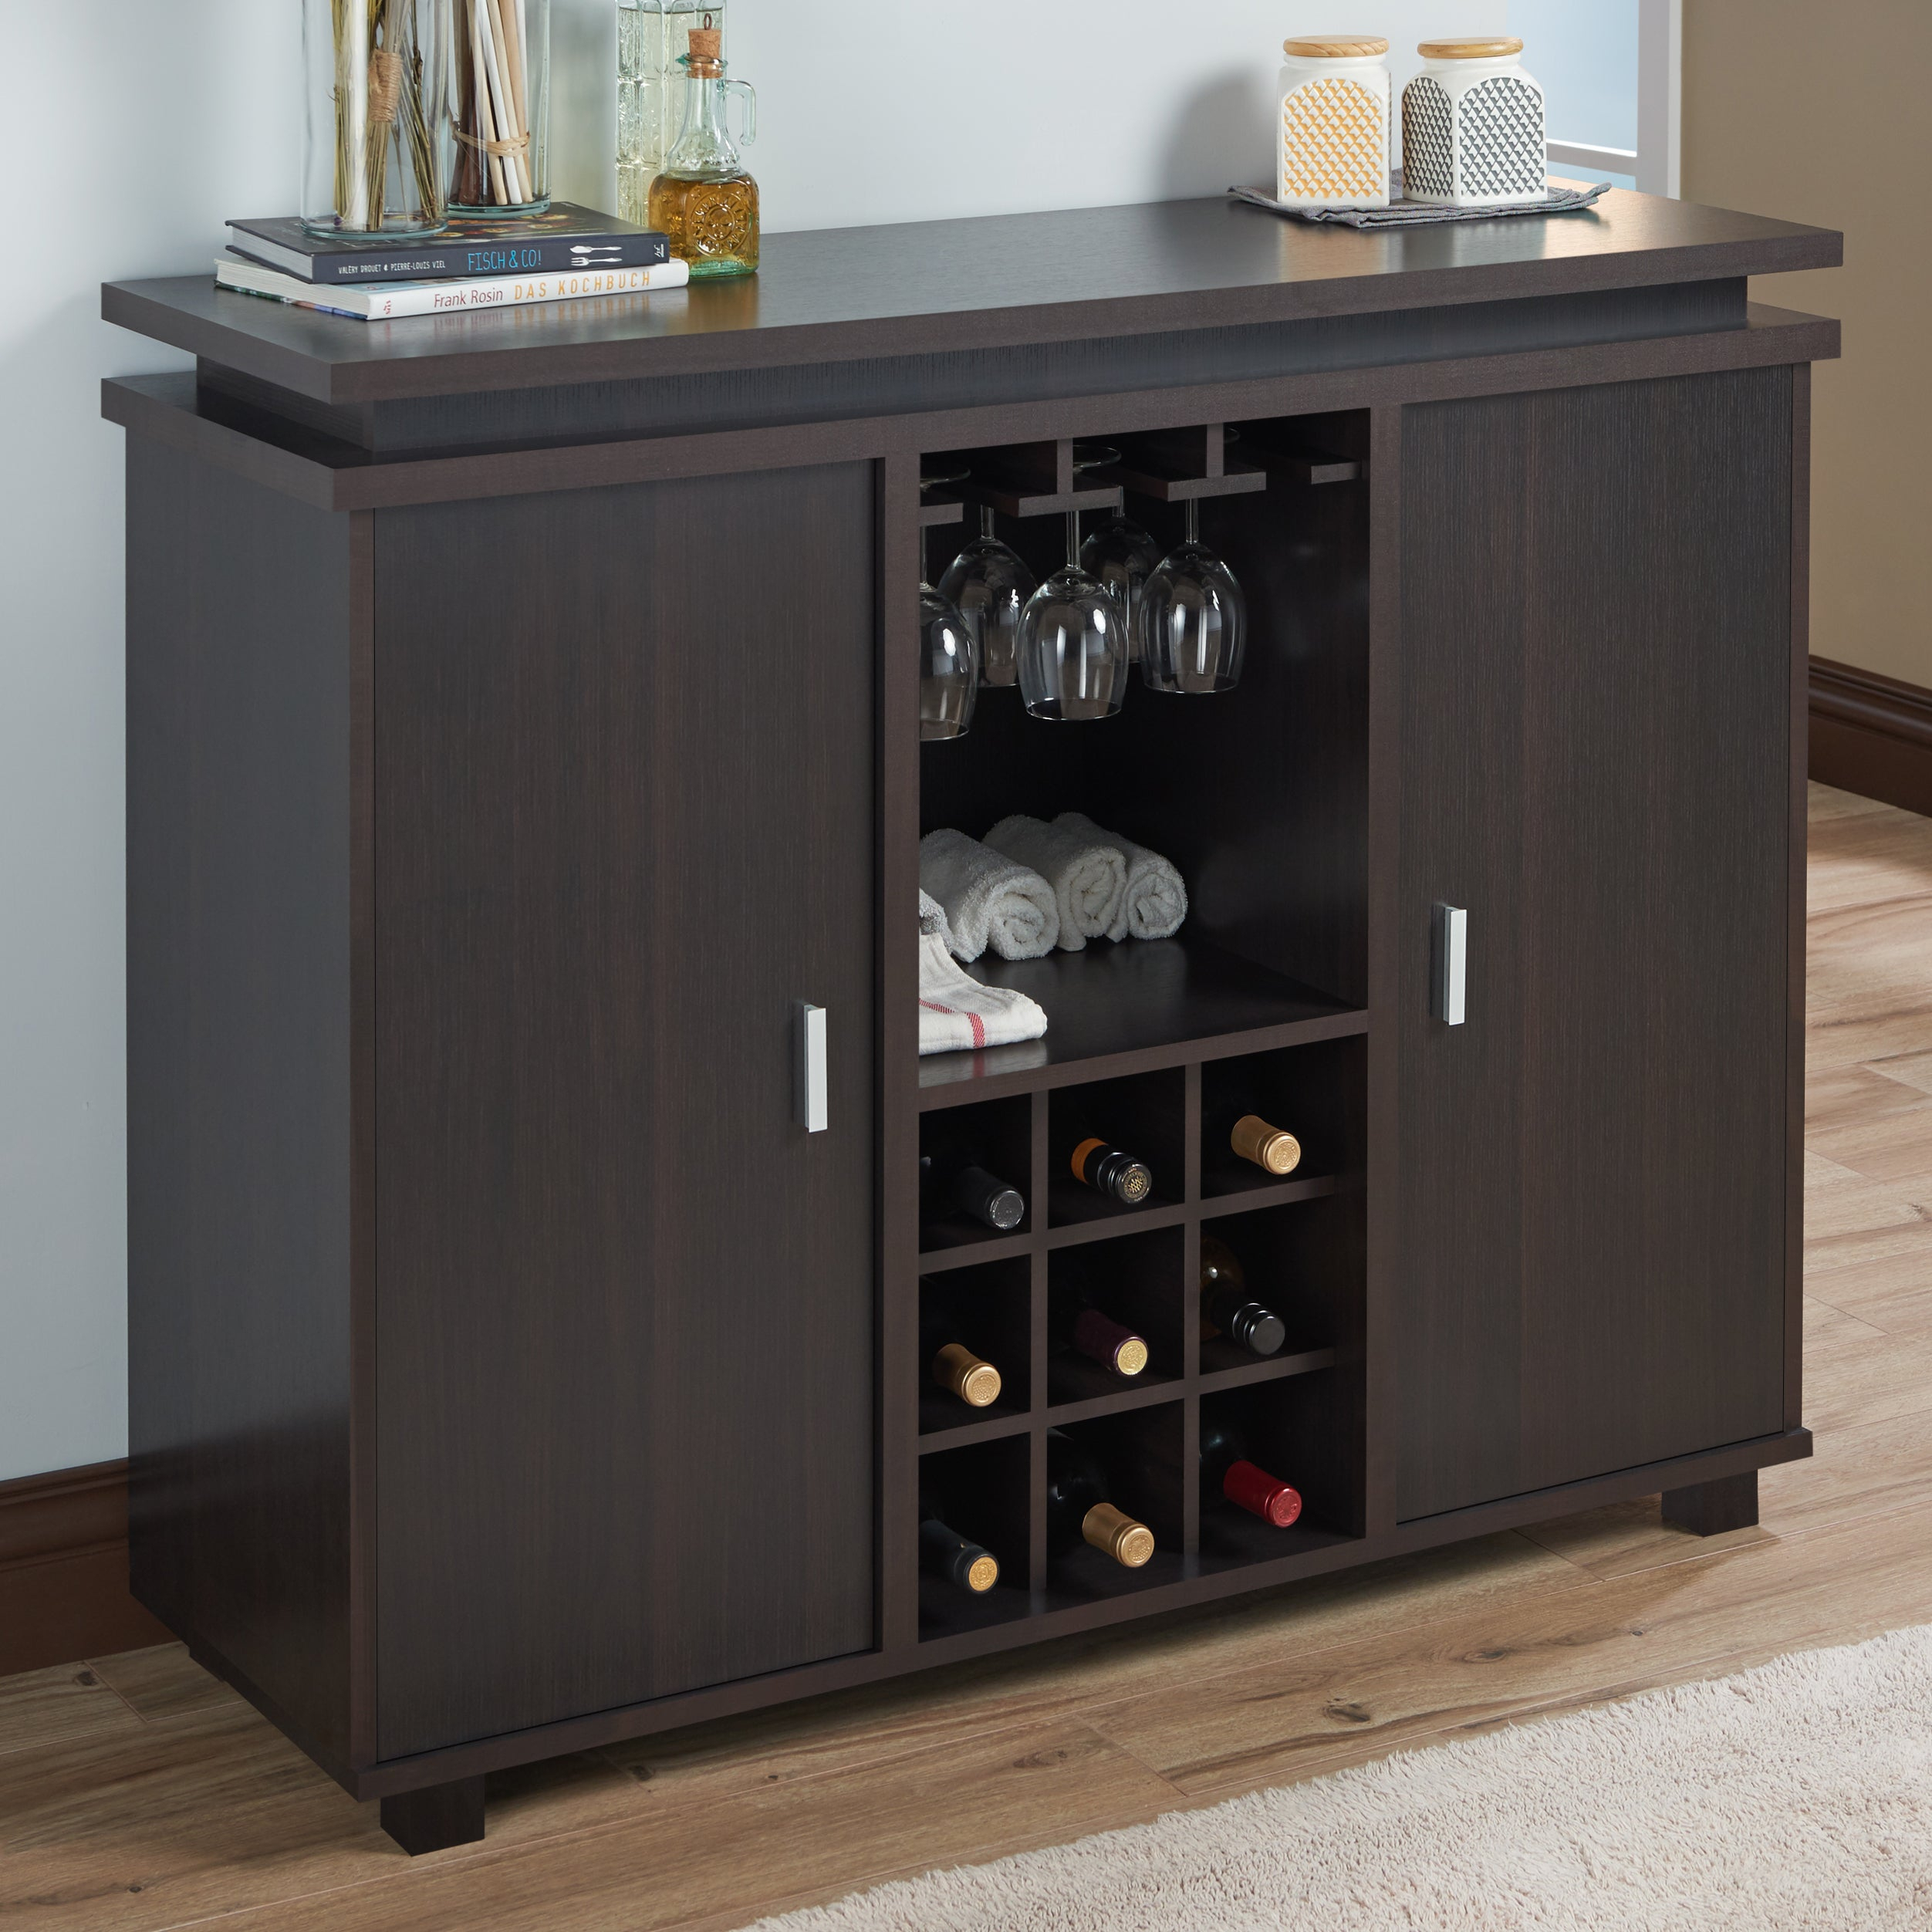 Furniture Of America Mirande Contemporary Espresso Dining Buffet With Wine Storage With Contemporary Espresso Dining Buffets (View 18 of 30)